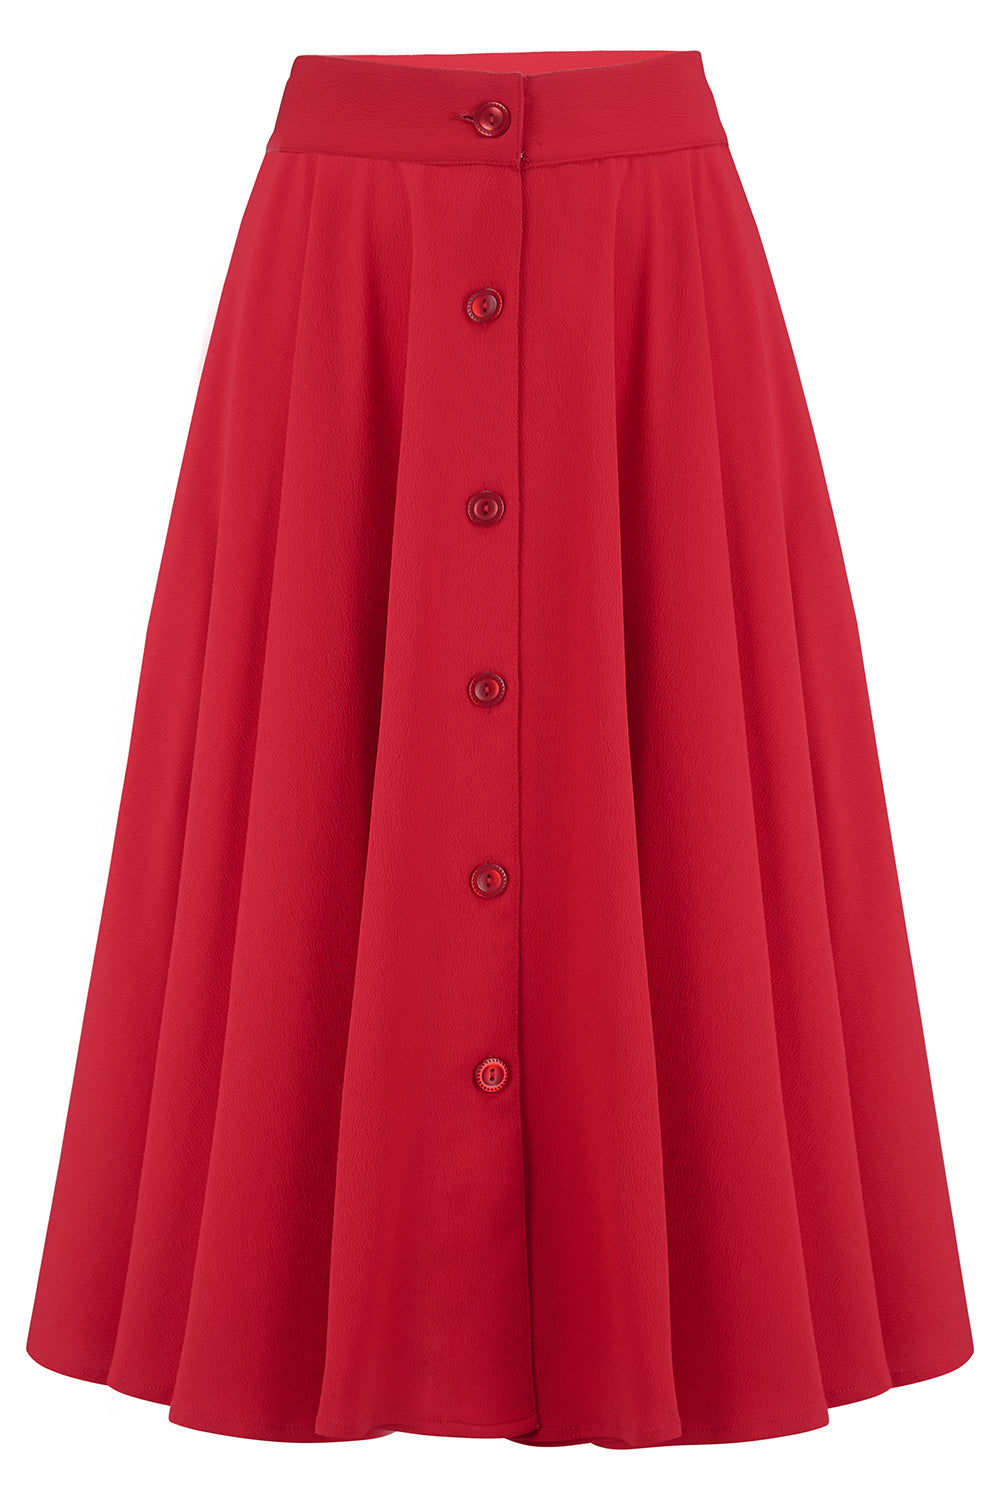 "Rock n Romance The ""Beverly"" Button Front Full Circle Skirt with Pockets in Solid Red, True & Authentic 1950s Vintage Style - RocknRomance Clothing"